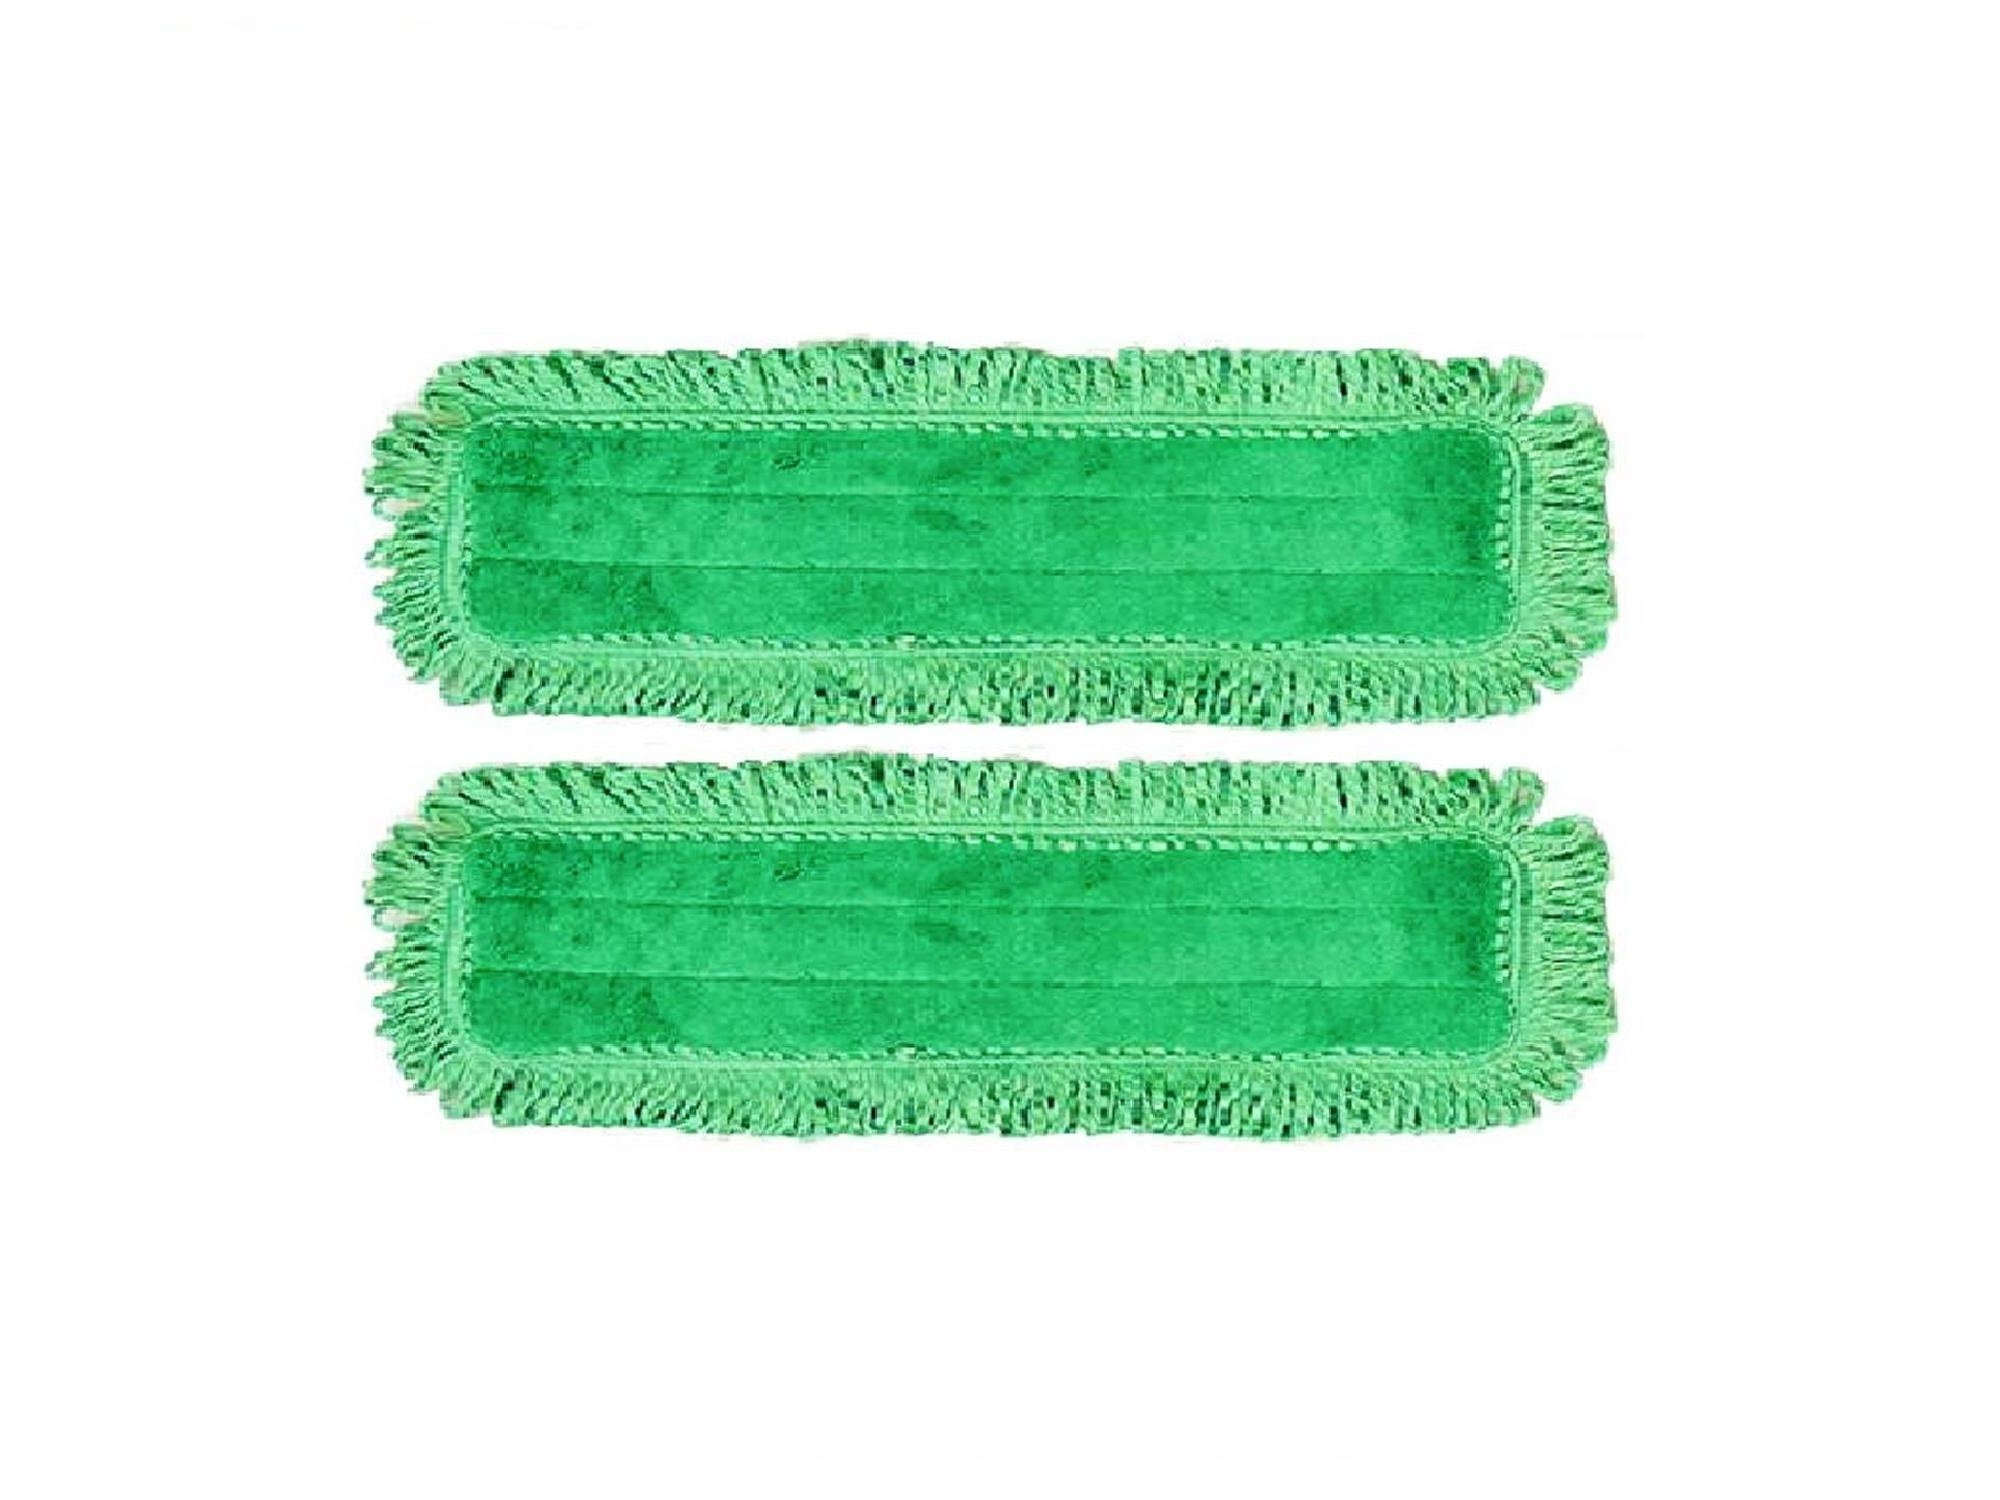 2-pack of 18'' Inch Green Fringe Microfiber Dust Mop Pads for Professional Commercial Microfiber Mops